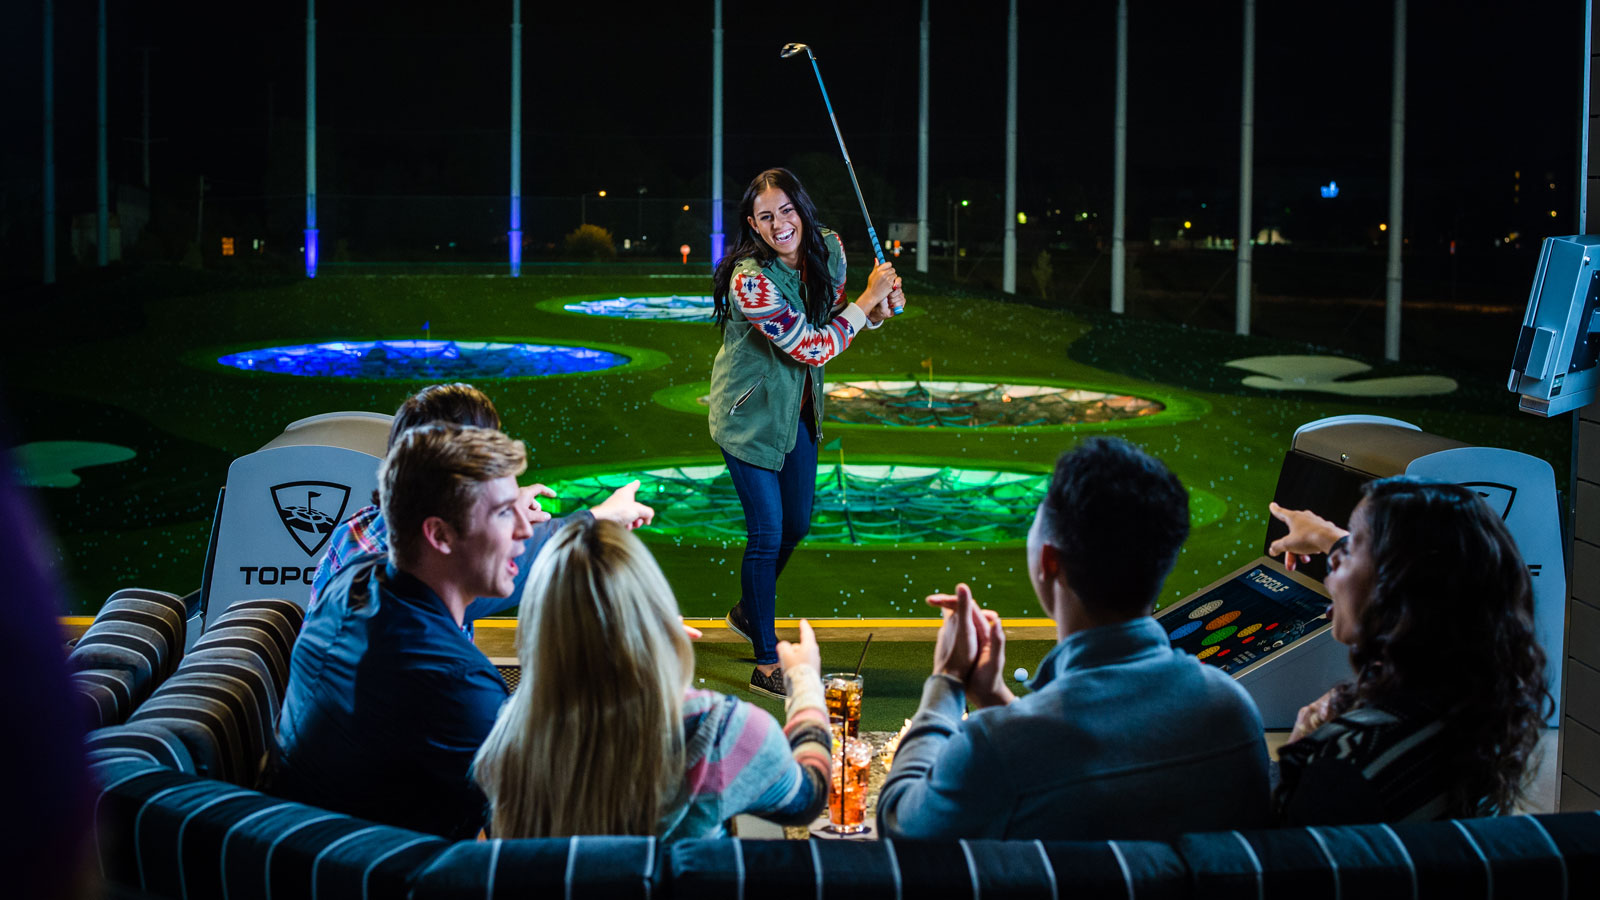 Topgolf – the Ultimate Golf Game Coming to Dubai • golfscape